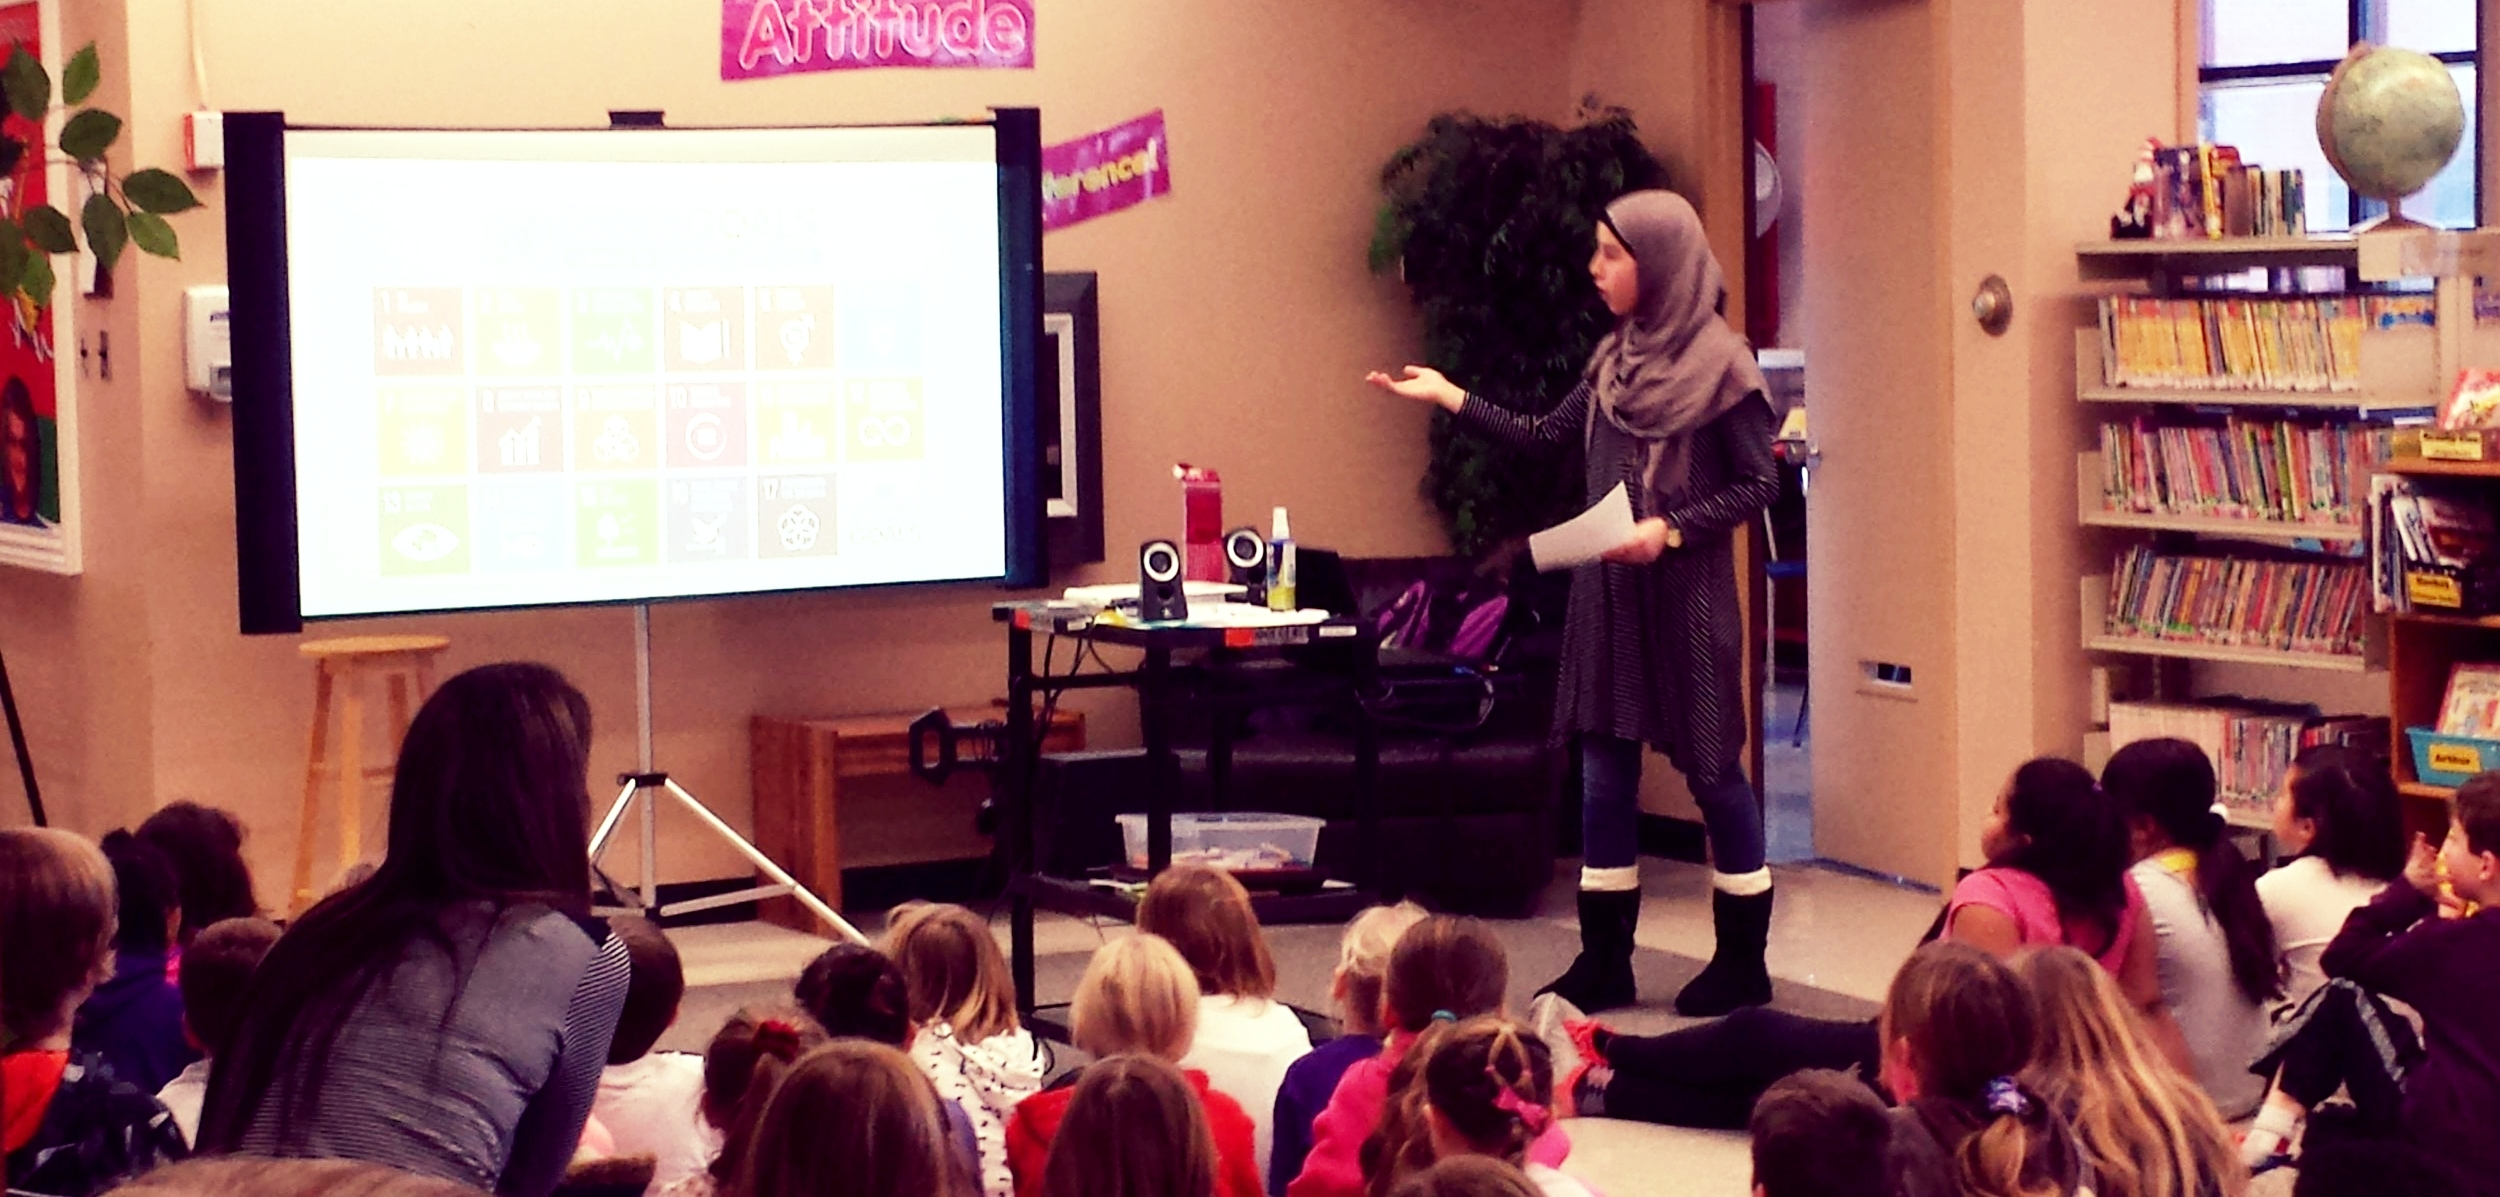 After having to cancel twice due to weather, Bessborough School was happy to welcome the Act4GlobalChange, New Brunswick Youth Ambassador, Hajar Abdesamie. Hajar came and gave a presentation to our grades K to 3 classes on the Act4GlobalChange initiative.  Hajar described for us the importance of global citizenship and gave examples of some activities other schools were doing to get involved. She also discussed climate change and it's connection to being a global citizen.